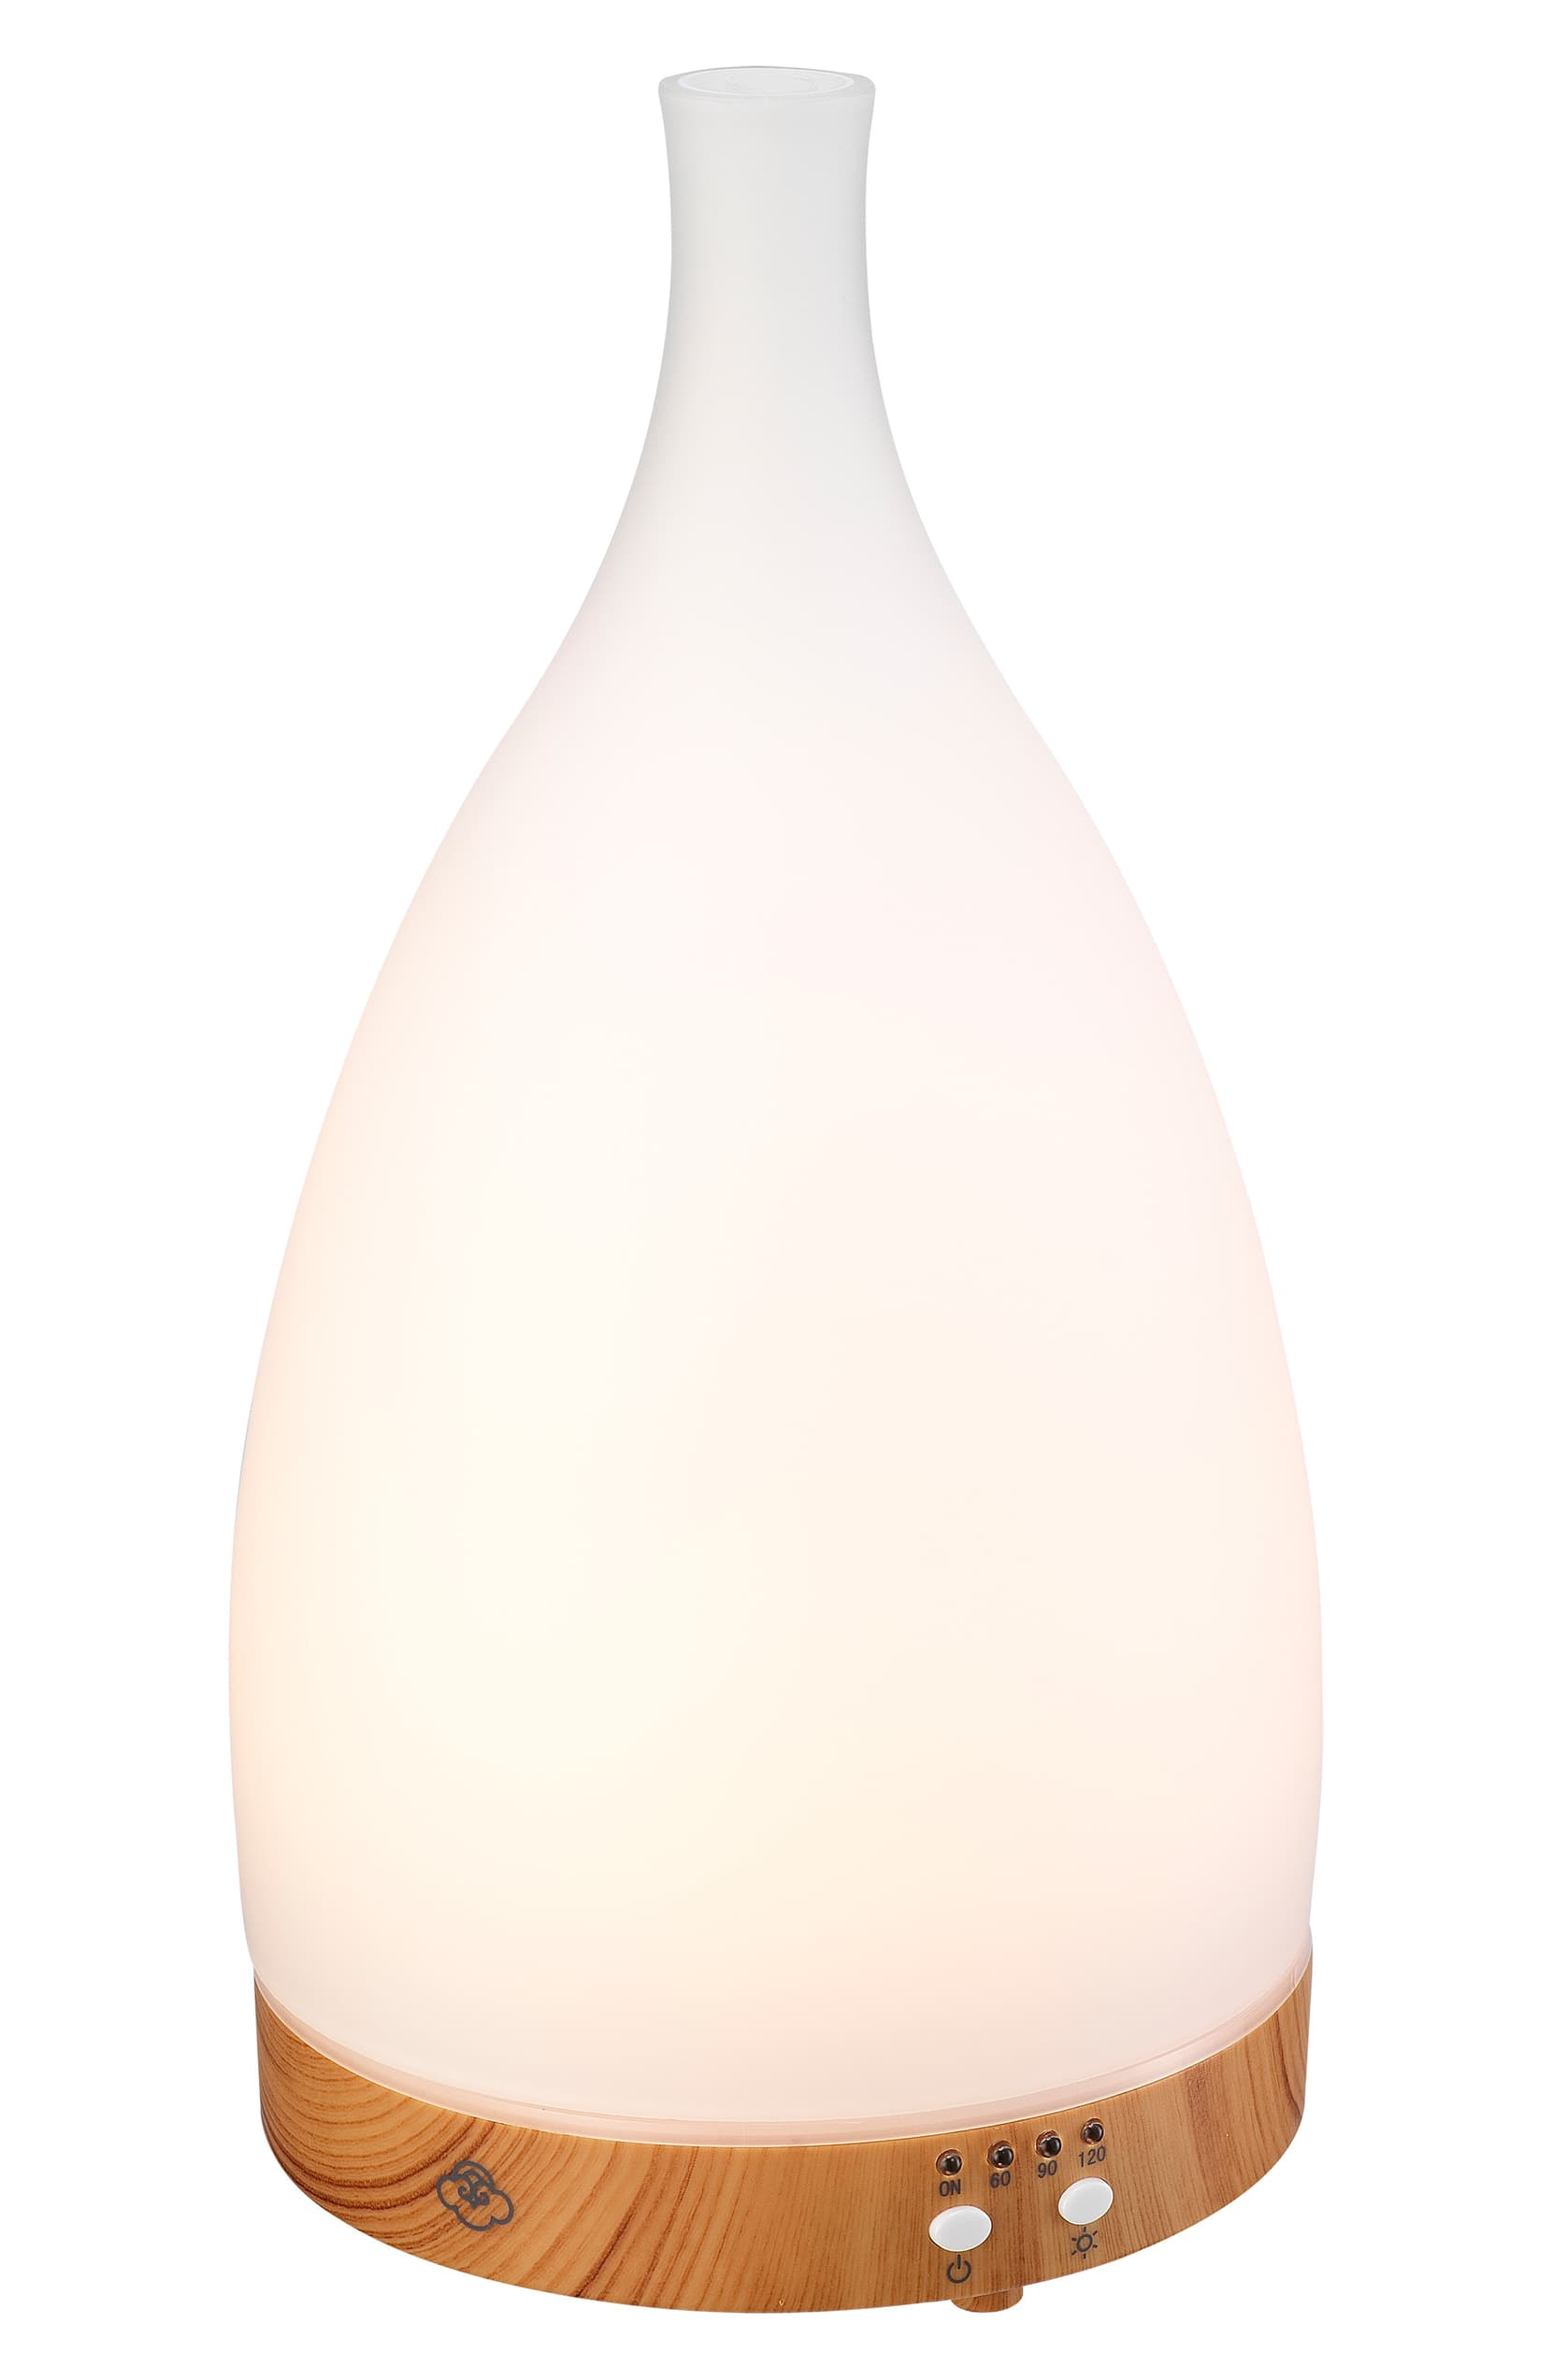 Serene House Corona Teardrop Scentilizer Diffuser - Best Christmas Gifts of 2019